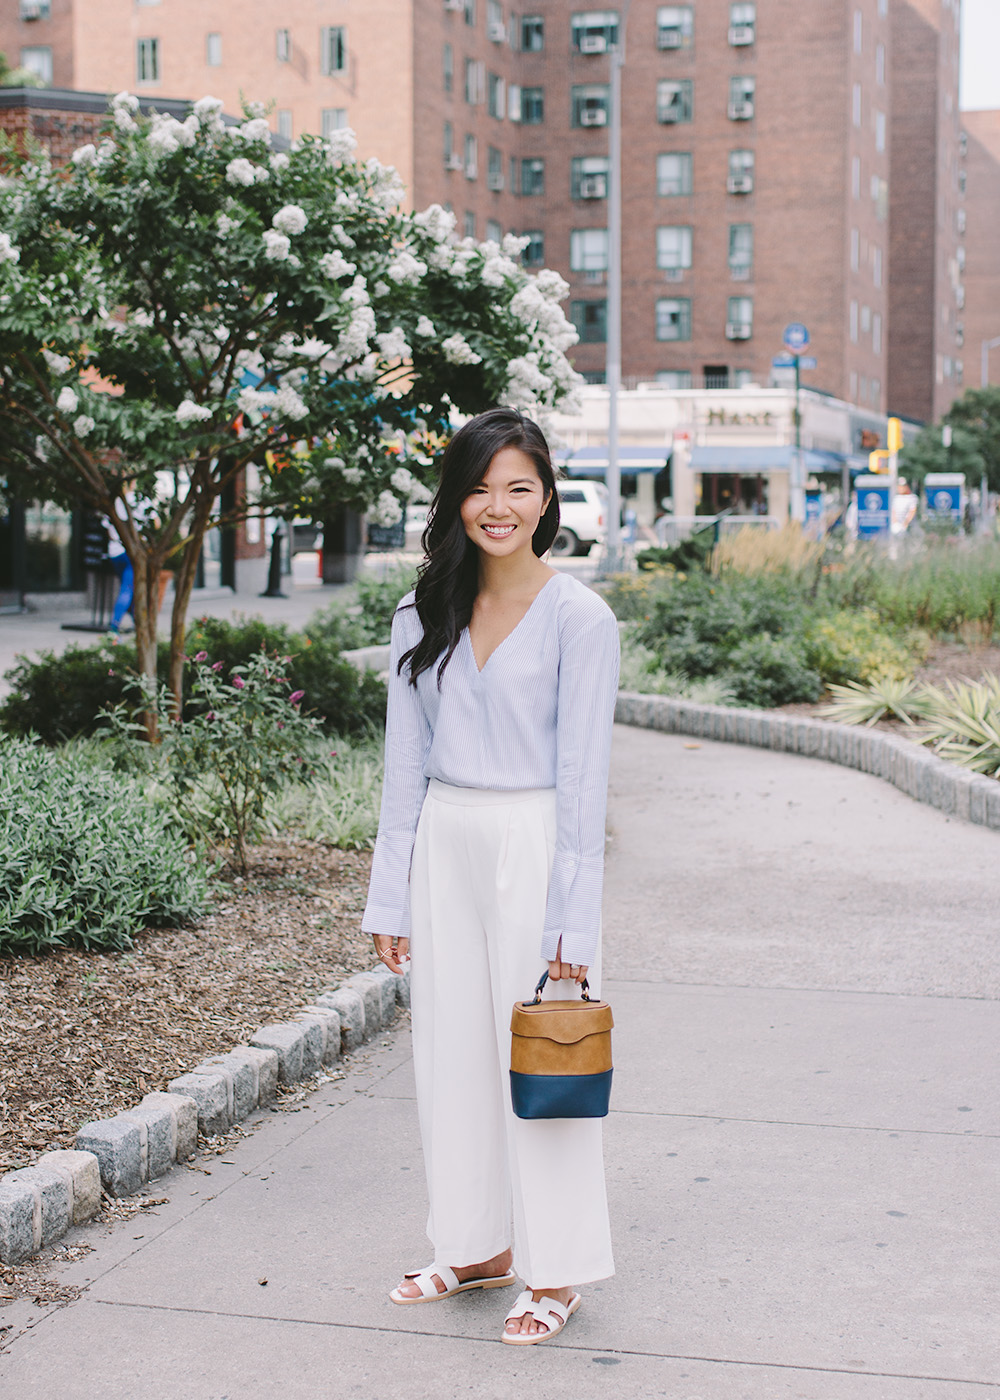 Summer Style / What to Wear in the Office